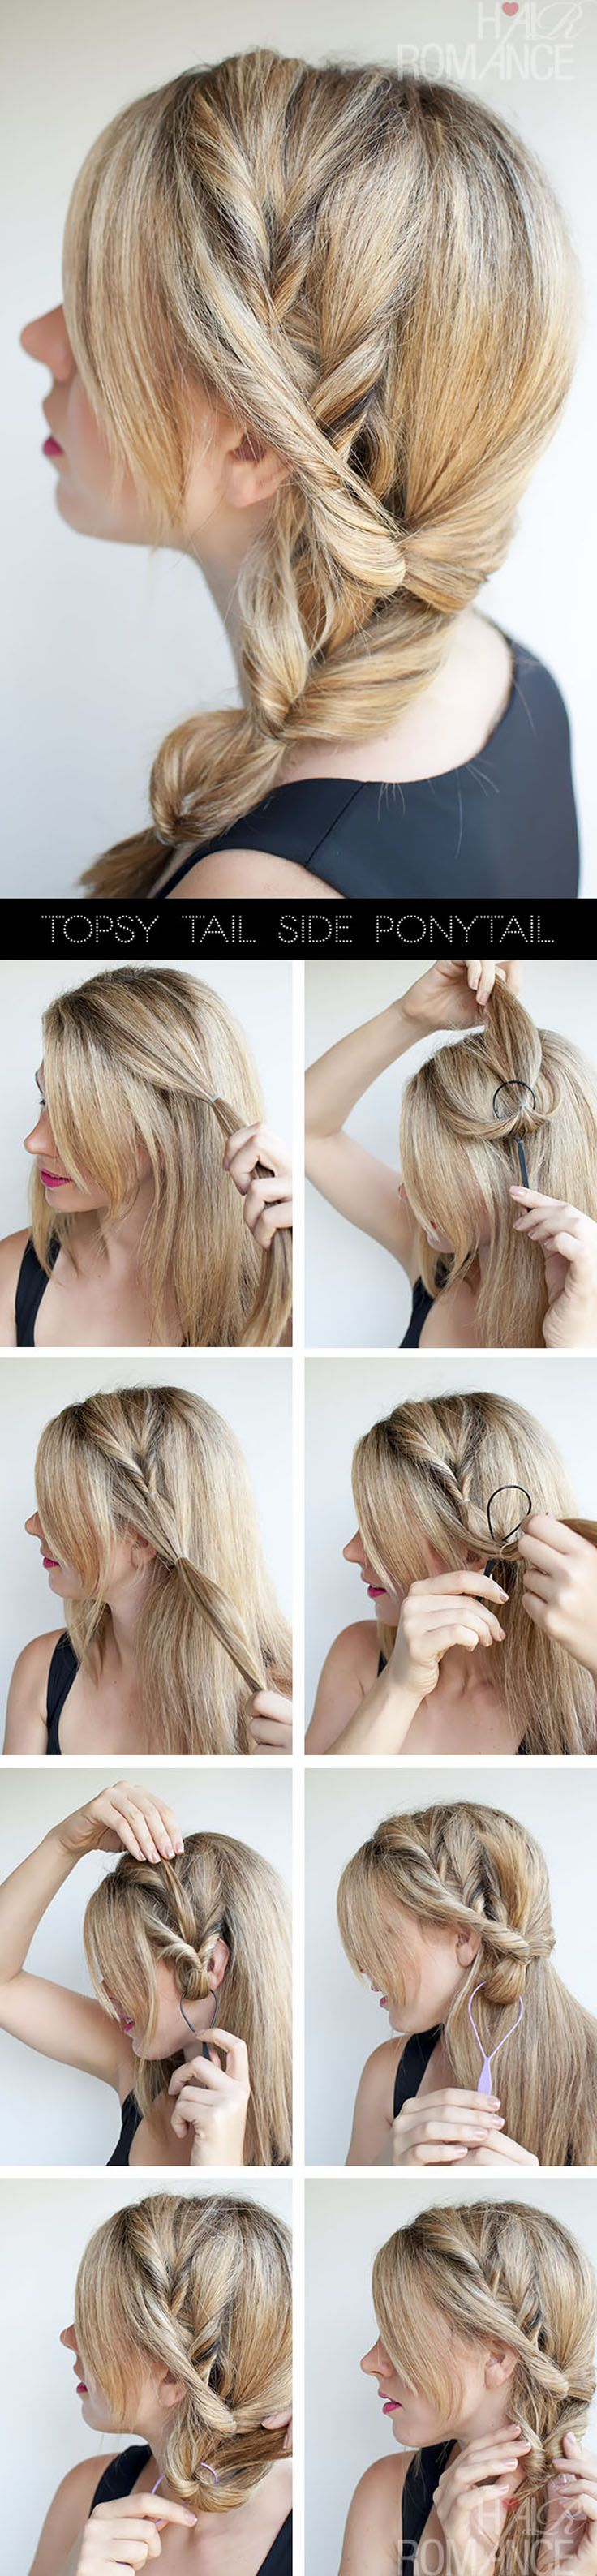 Everyday Braids Hairstyles